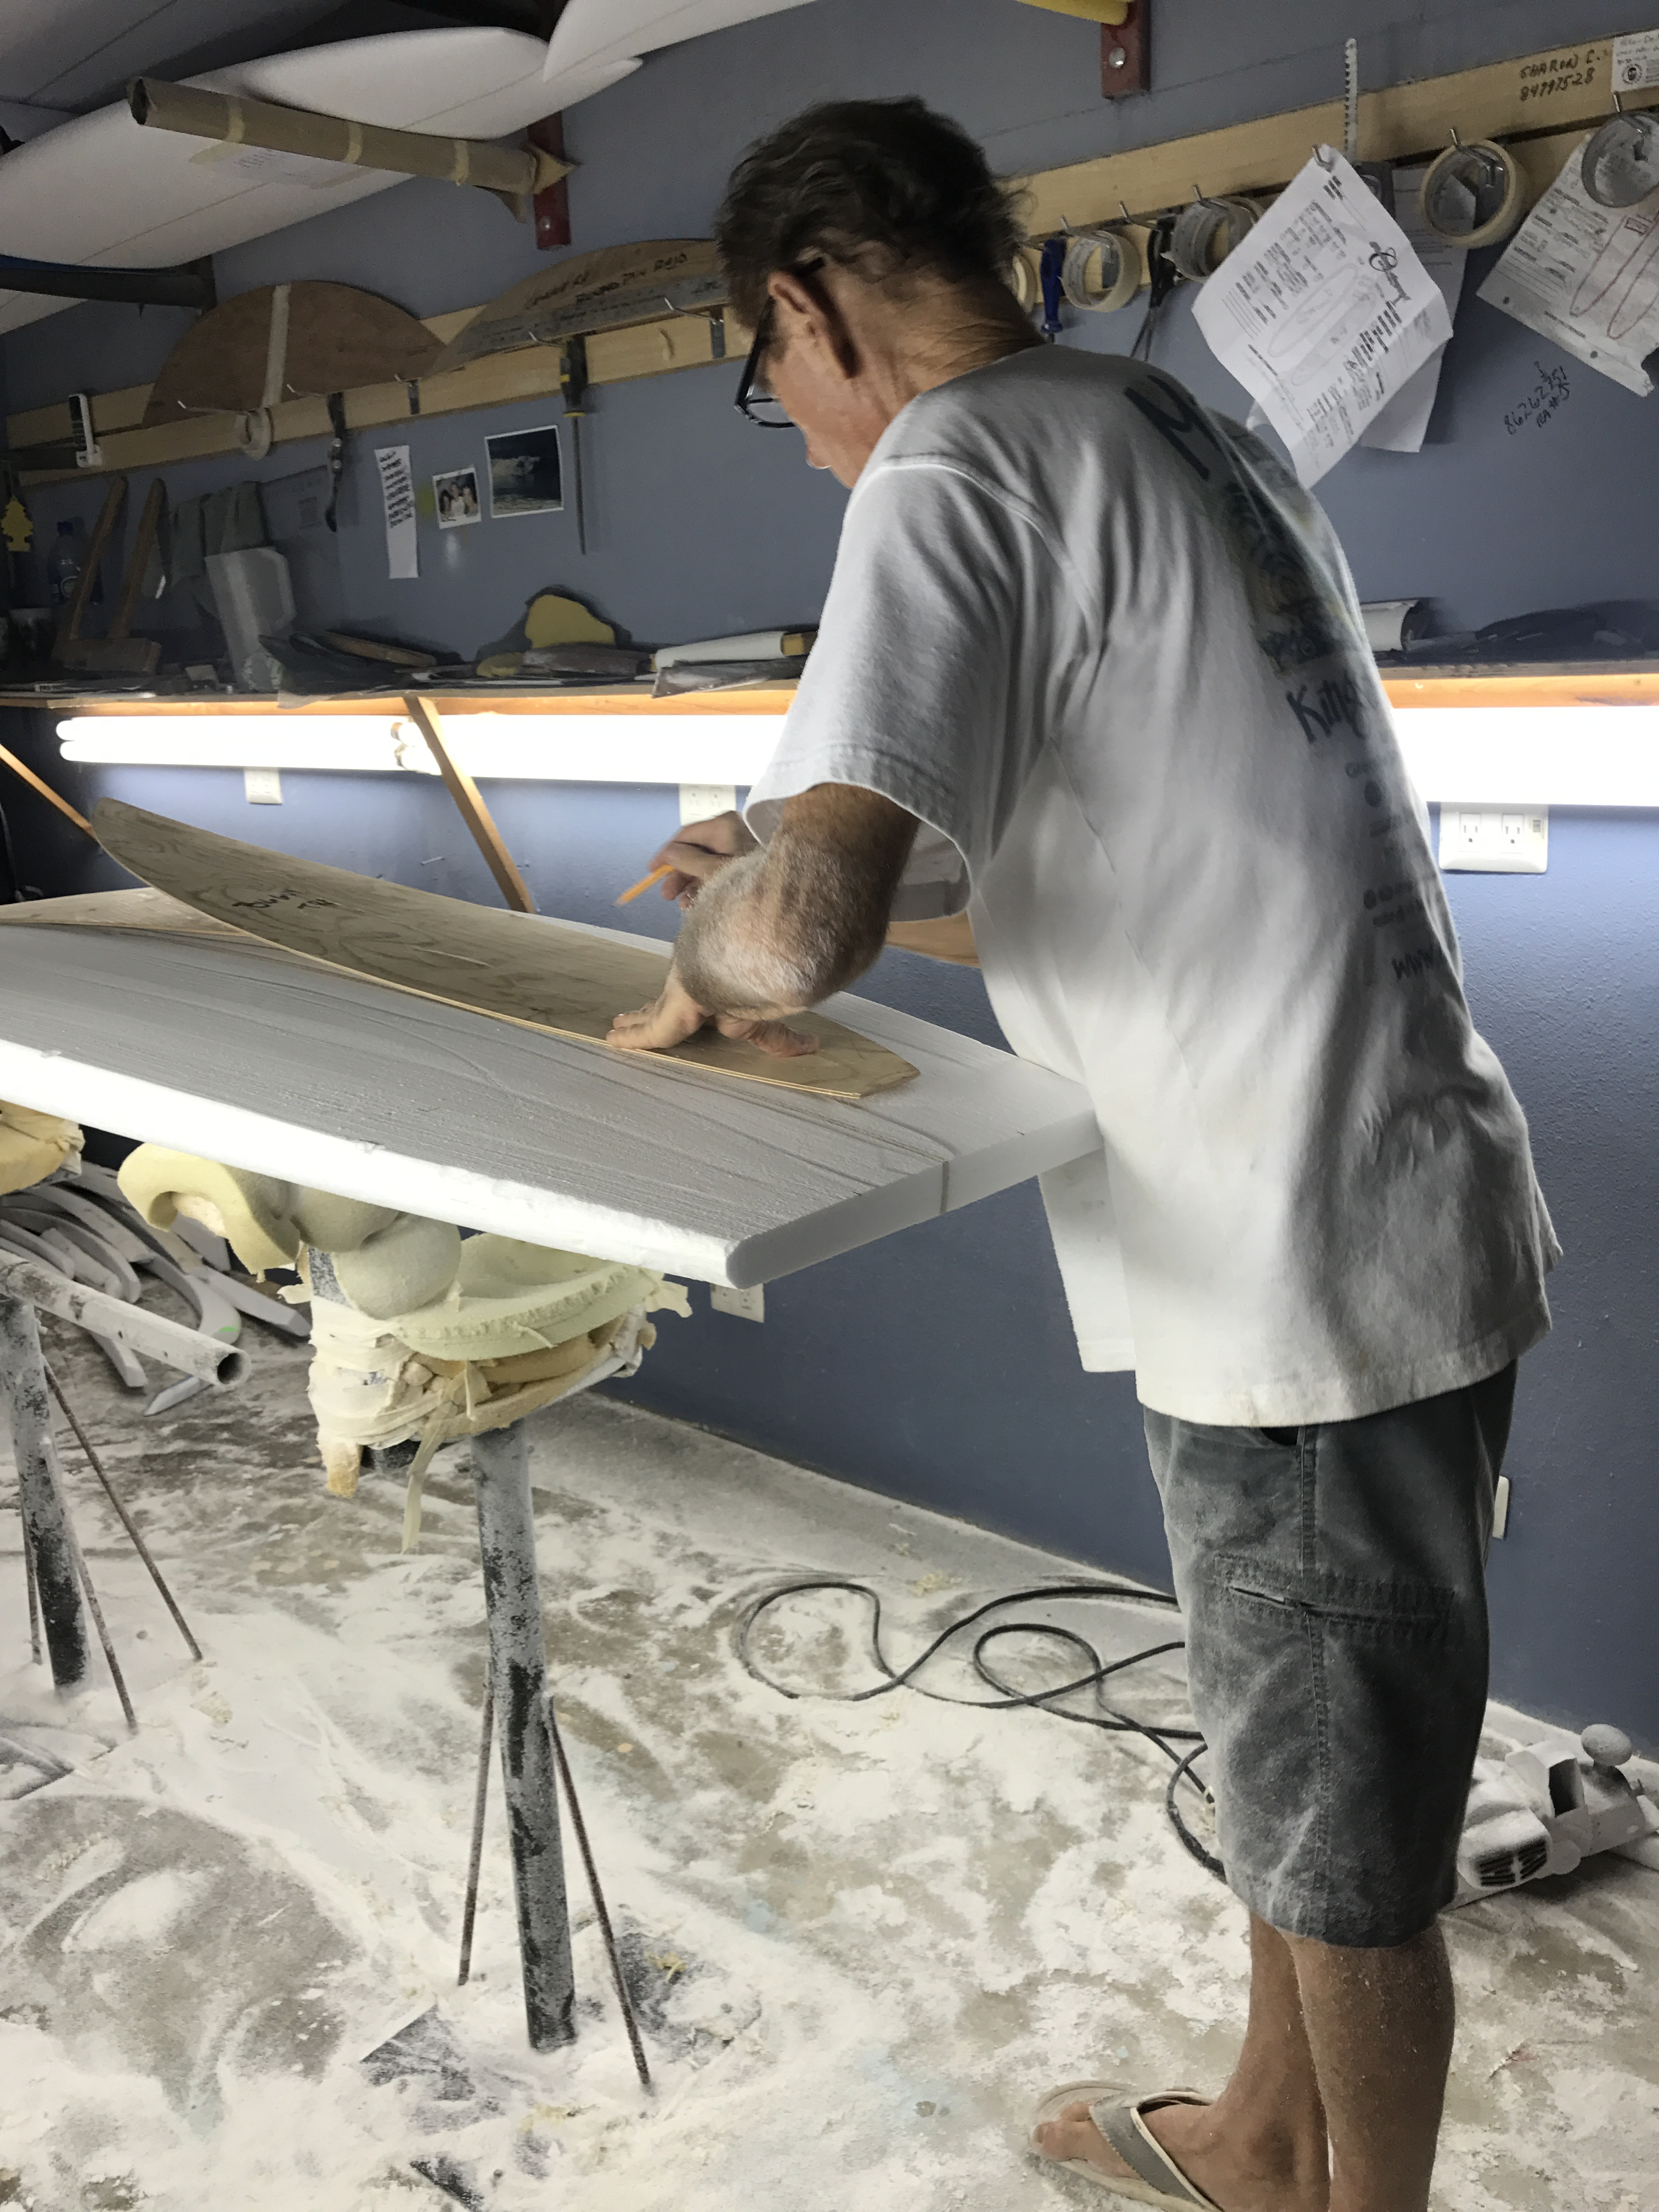 shaping surfboard tail